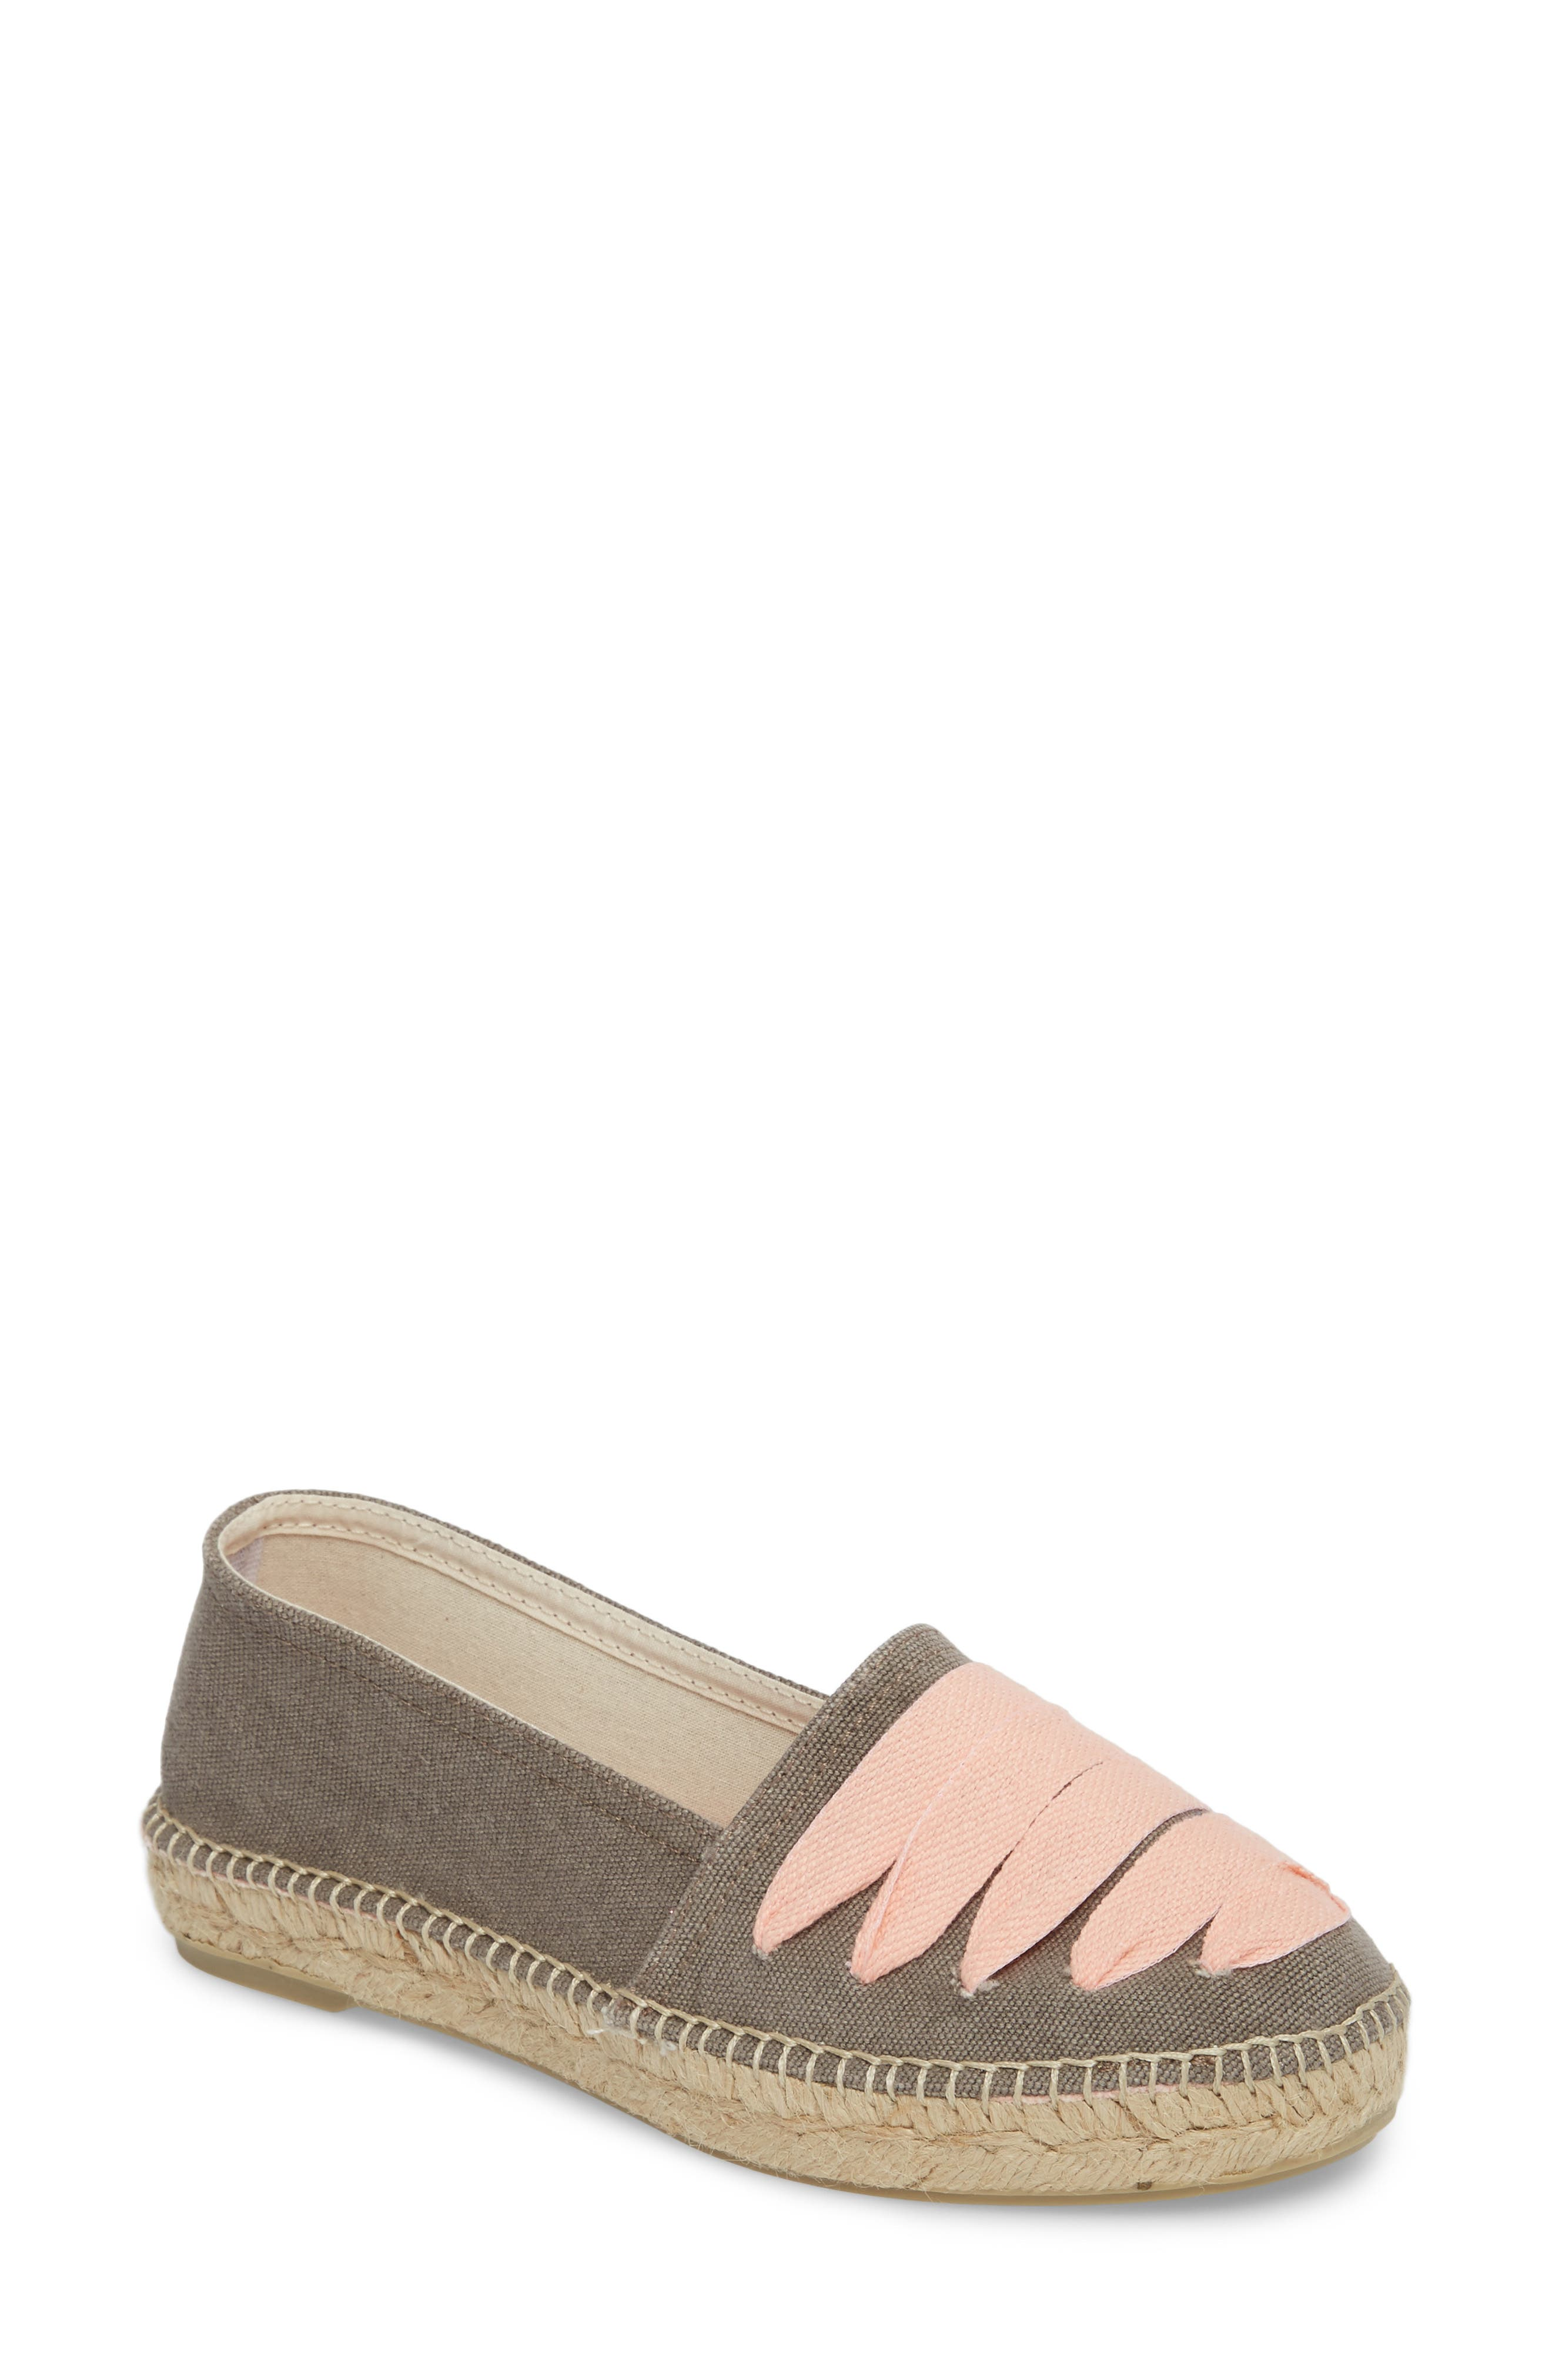 Rubi Espadrille Flat,                             Main thumbnail 1, color,                             Gris/ Rosa Fabric